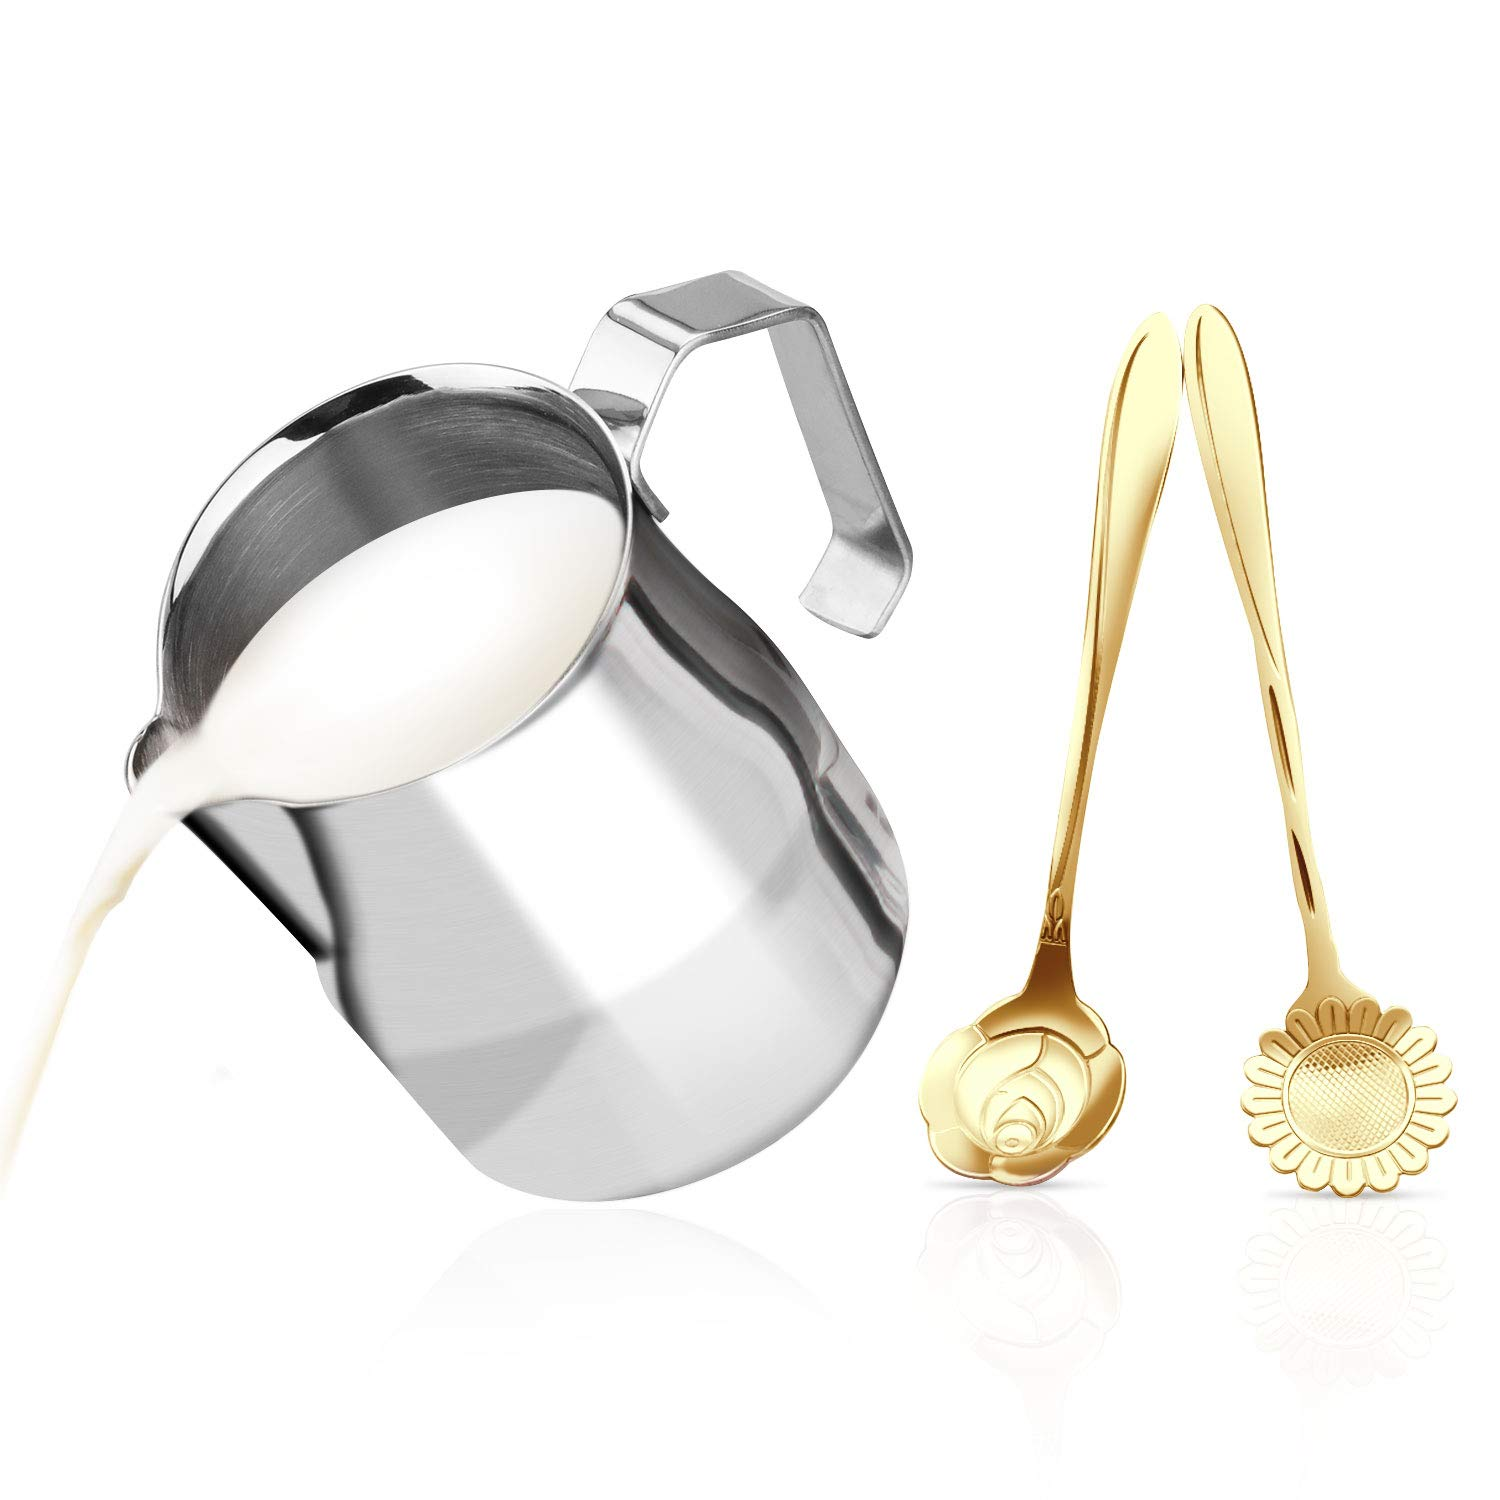 Milk Frothing Pitcher Jug - Stainless Steel Italian Style Professional Commercial Coffee Tools Cup with Dessert Coffee Spoons Set - Suitable for Espresso, Latte Art and Frothing Milk (12oz/350ML)